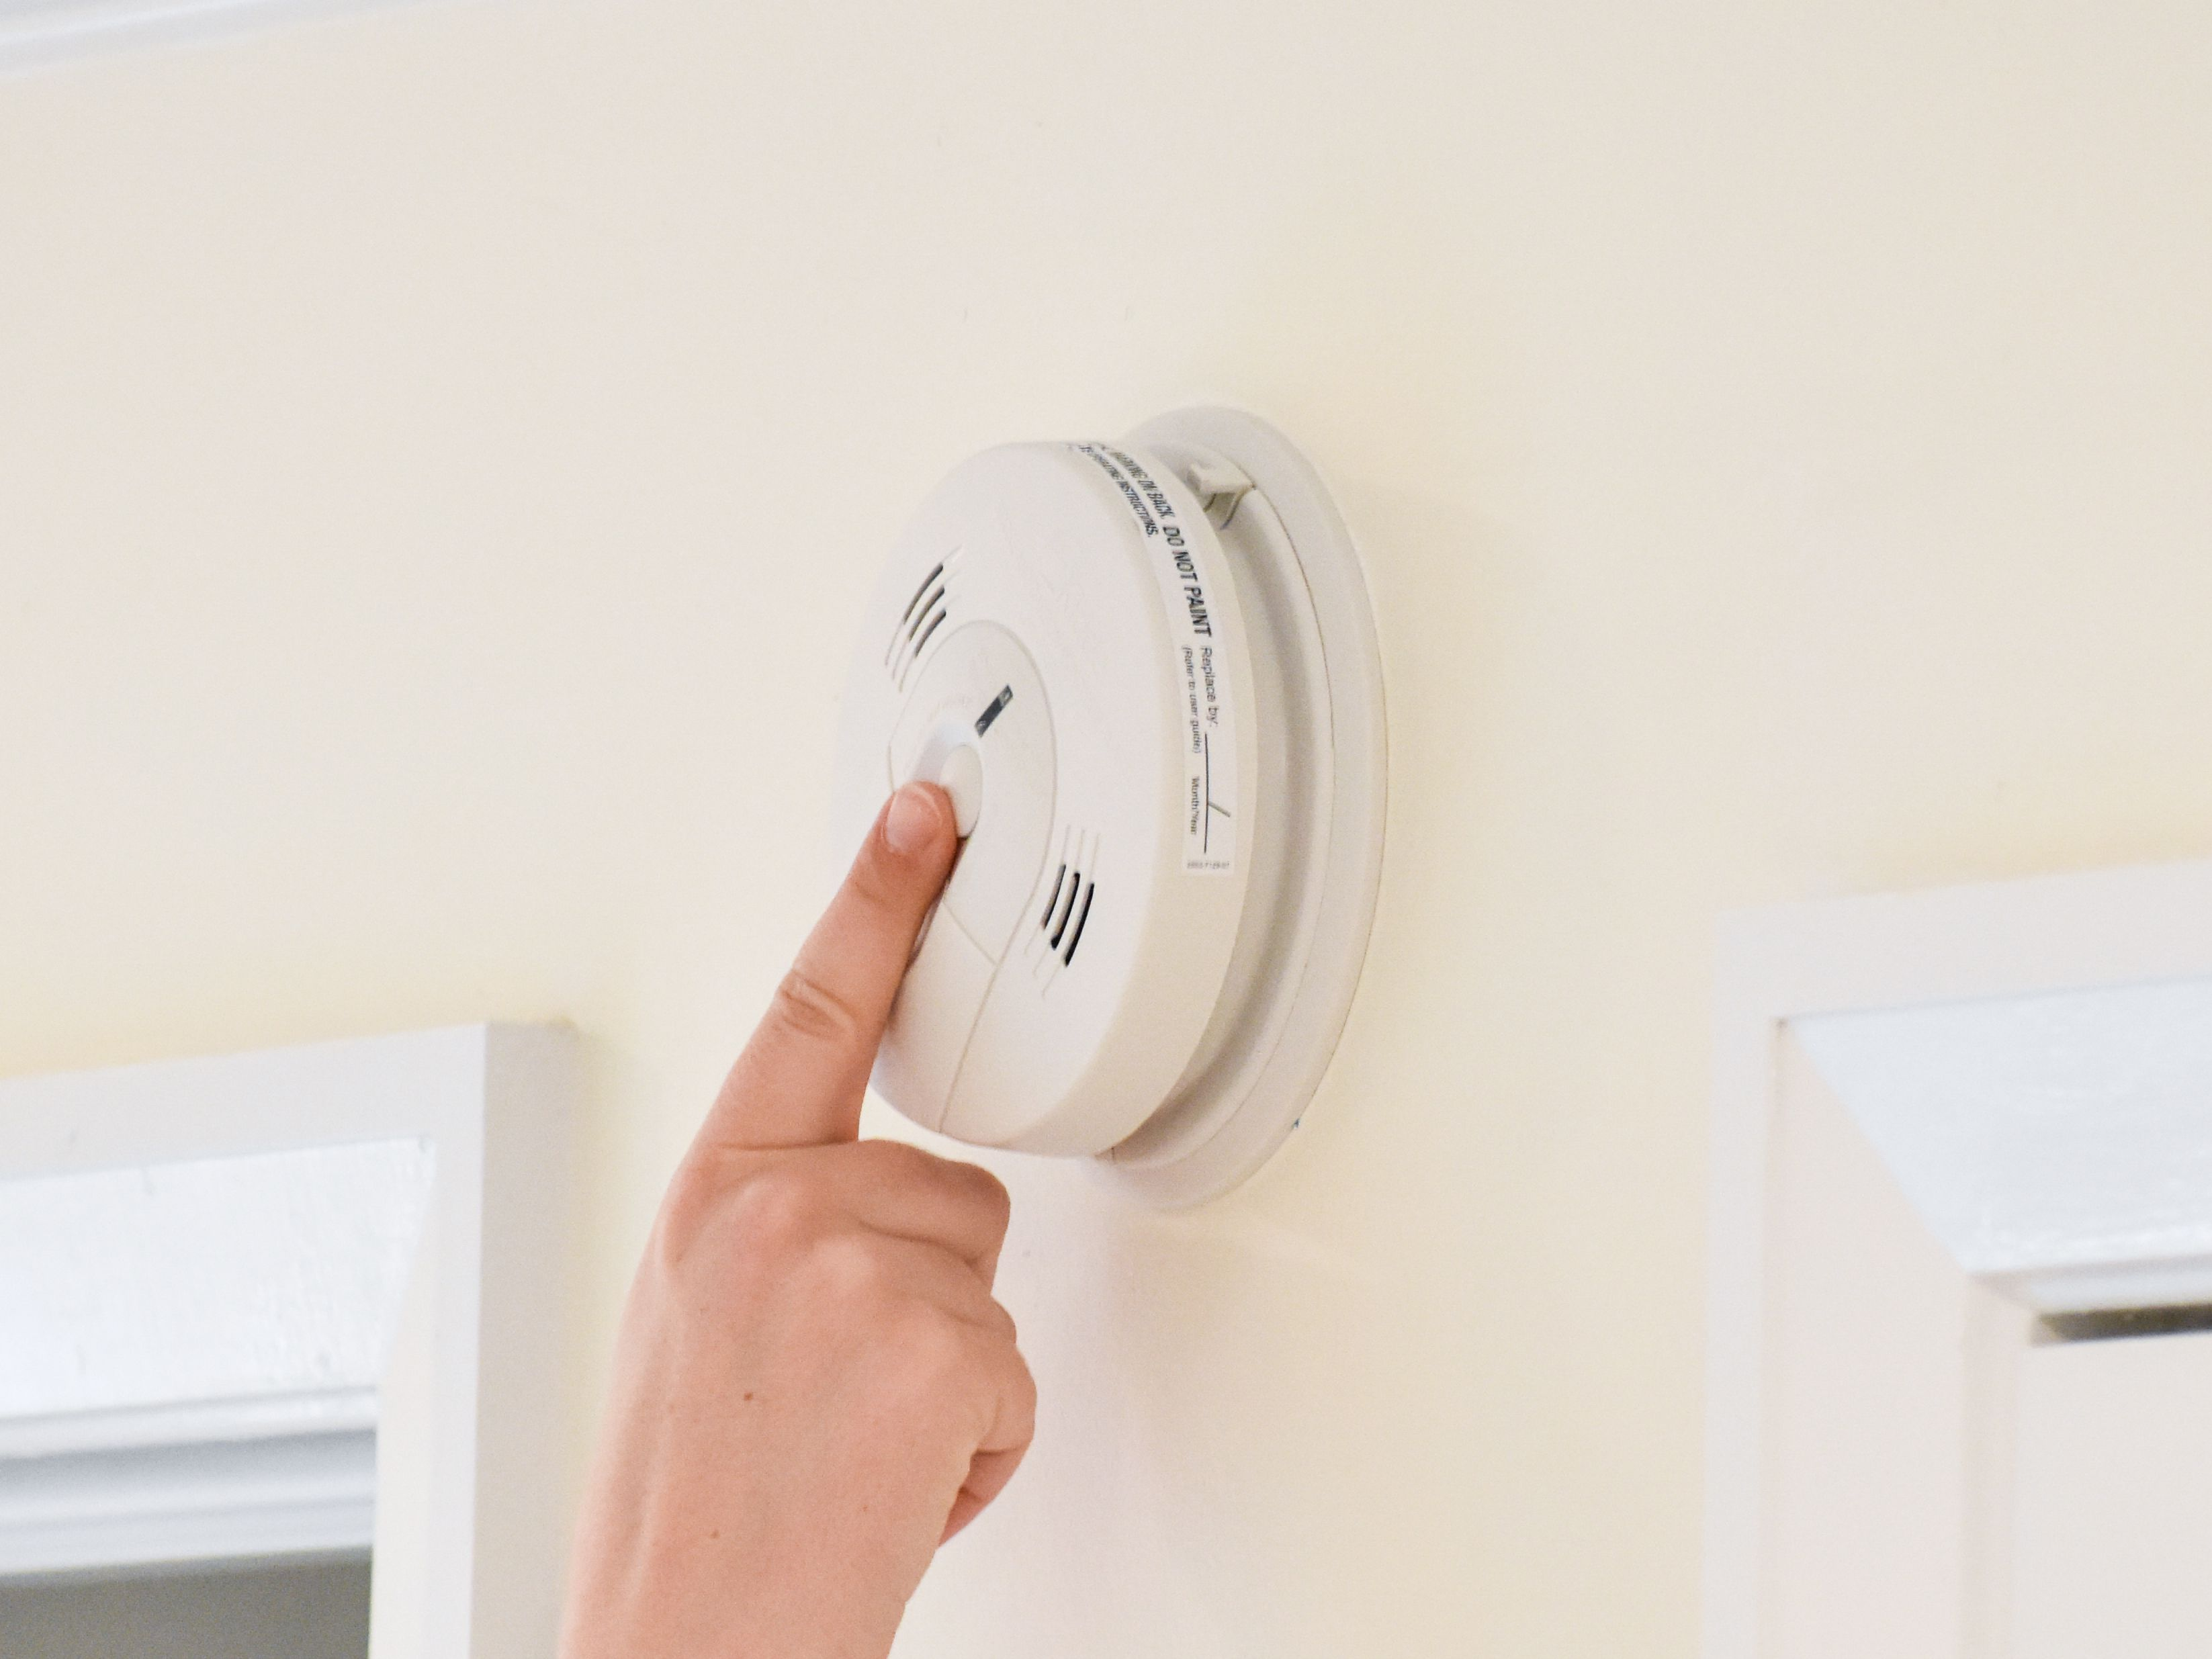 Kidde Smoke And Carbon Monoxide Alarm Review All In One Unit